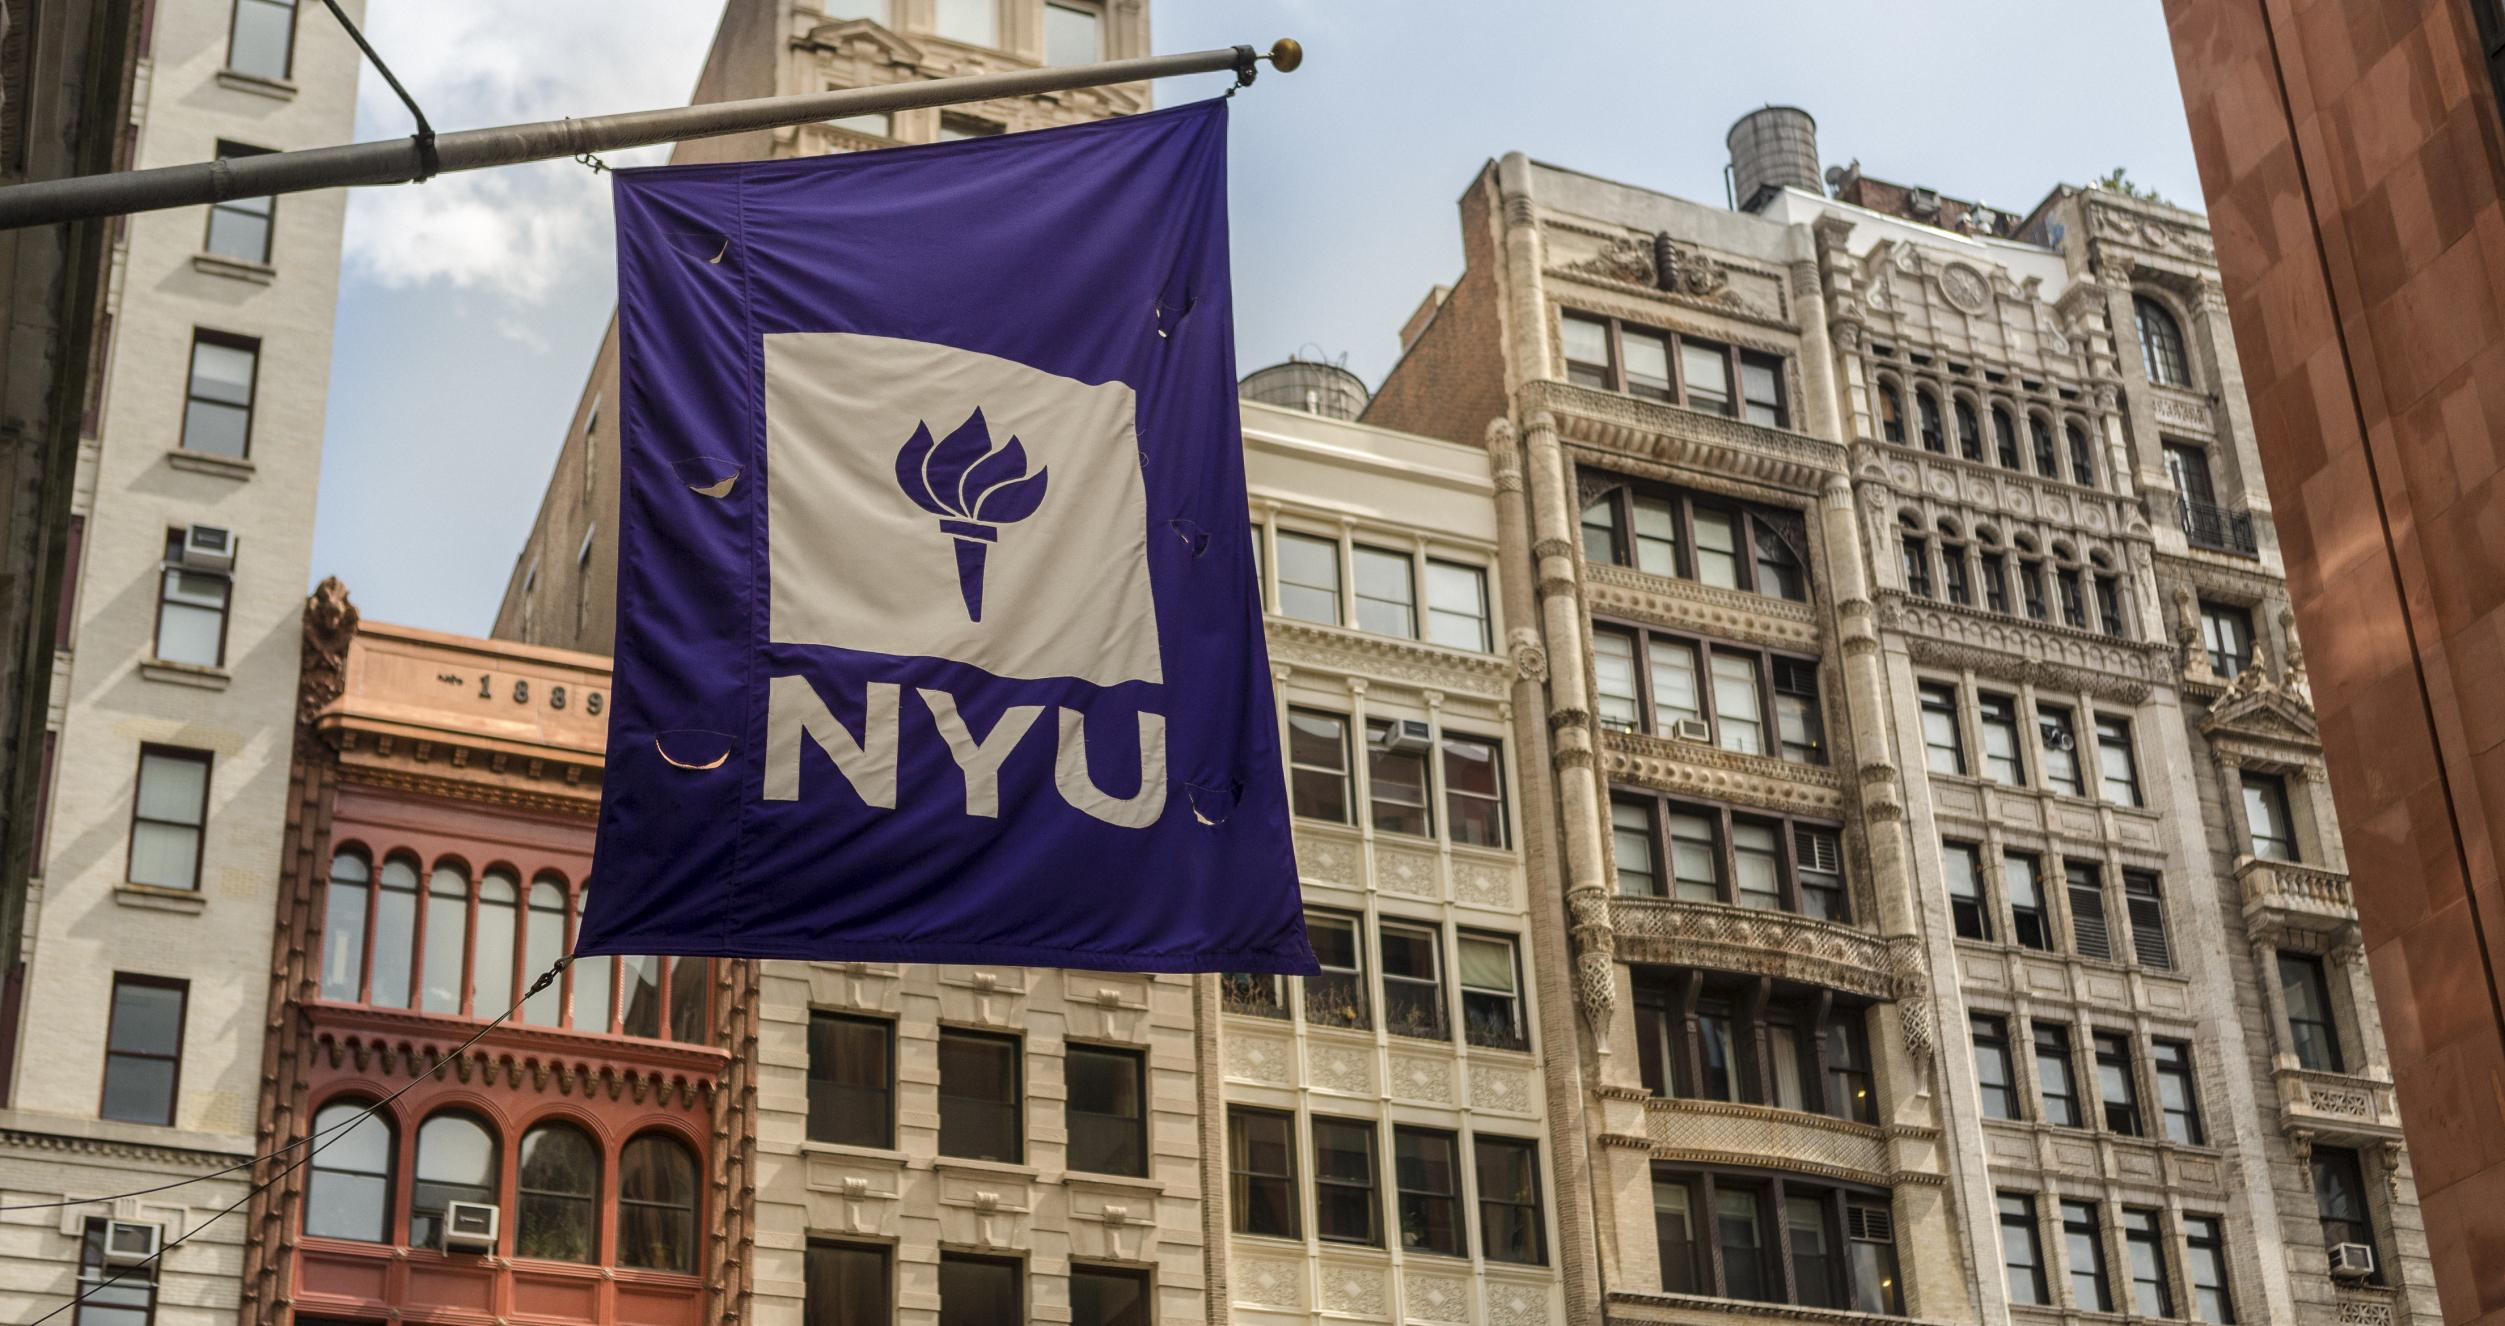 NYU flag against cityscape